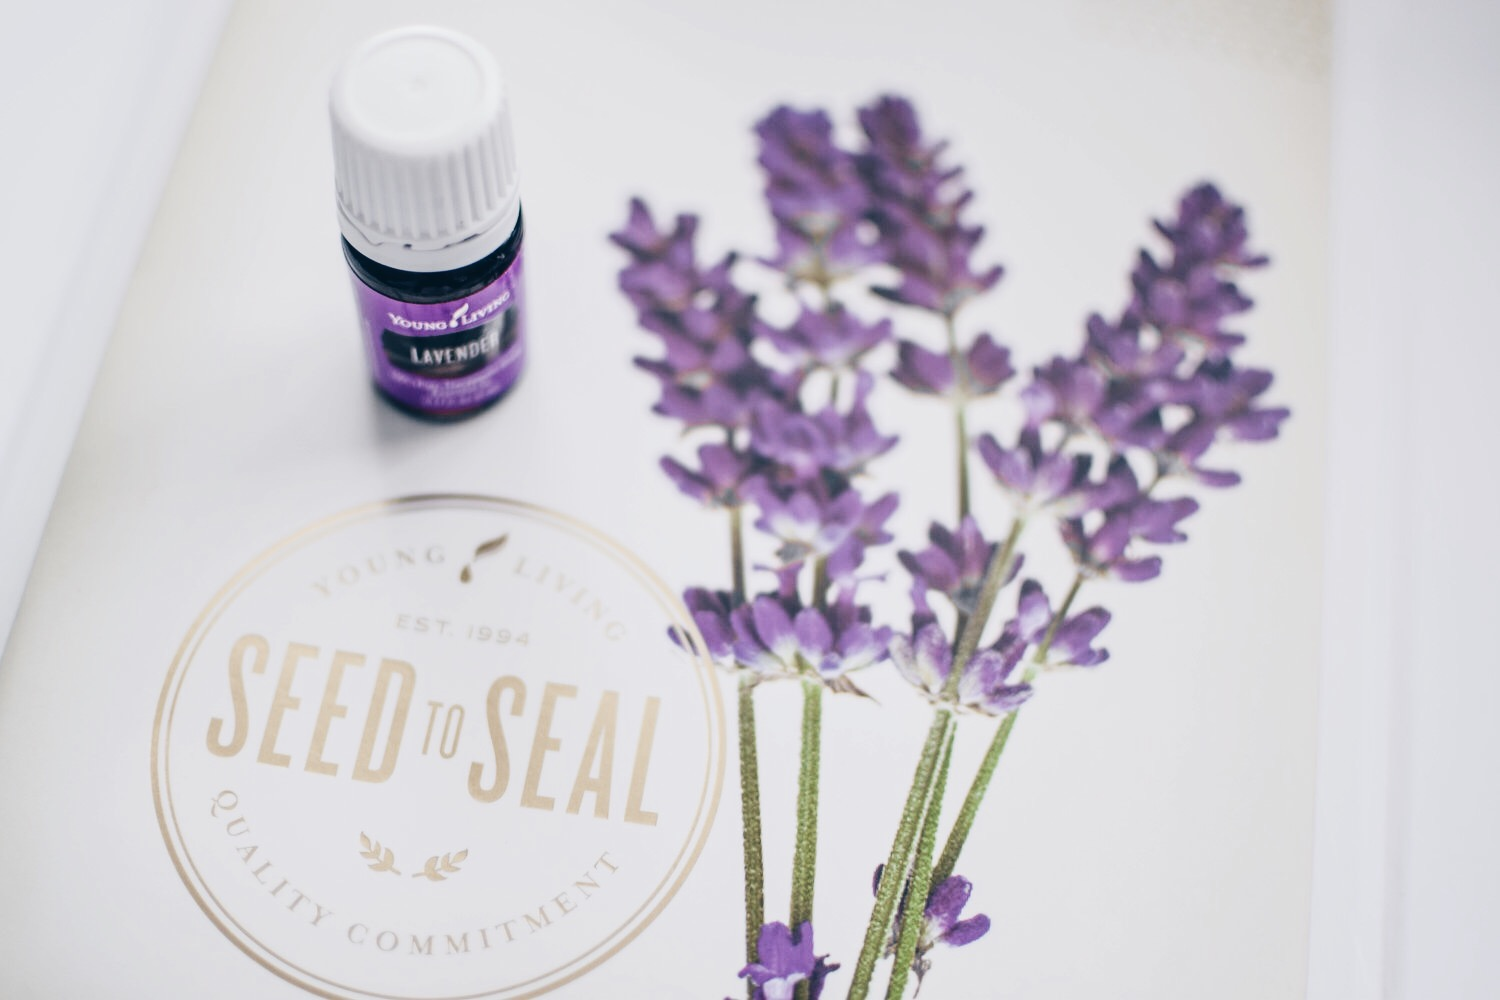 Essential Oils 101: What You Need to Know About Young Living | Pine Barren Beauty | about essential oils, how to use essential oils, how to get young living essential oils, why young living